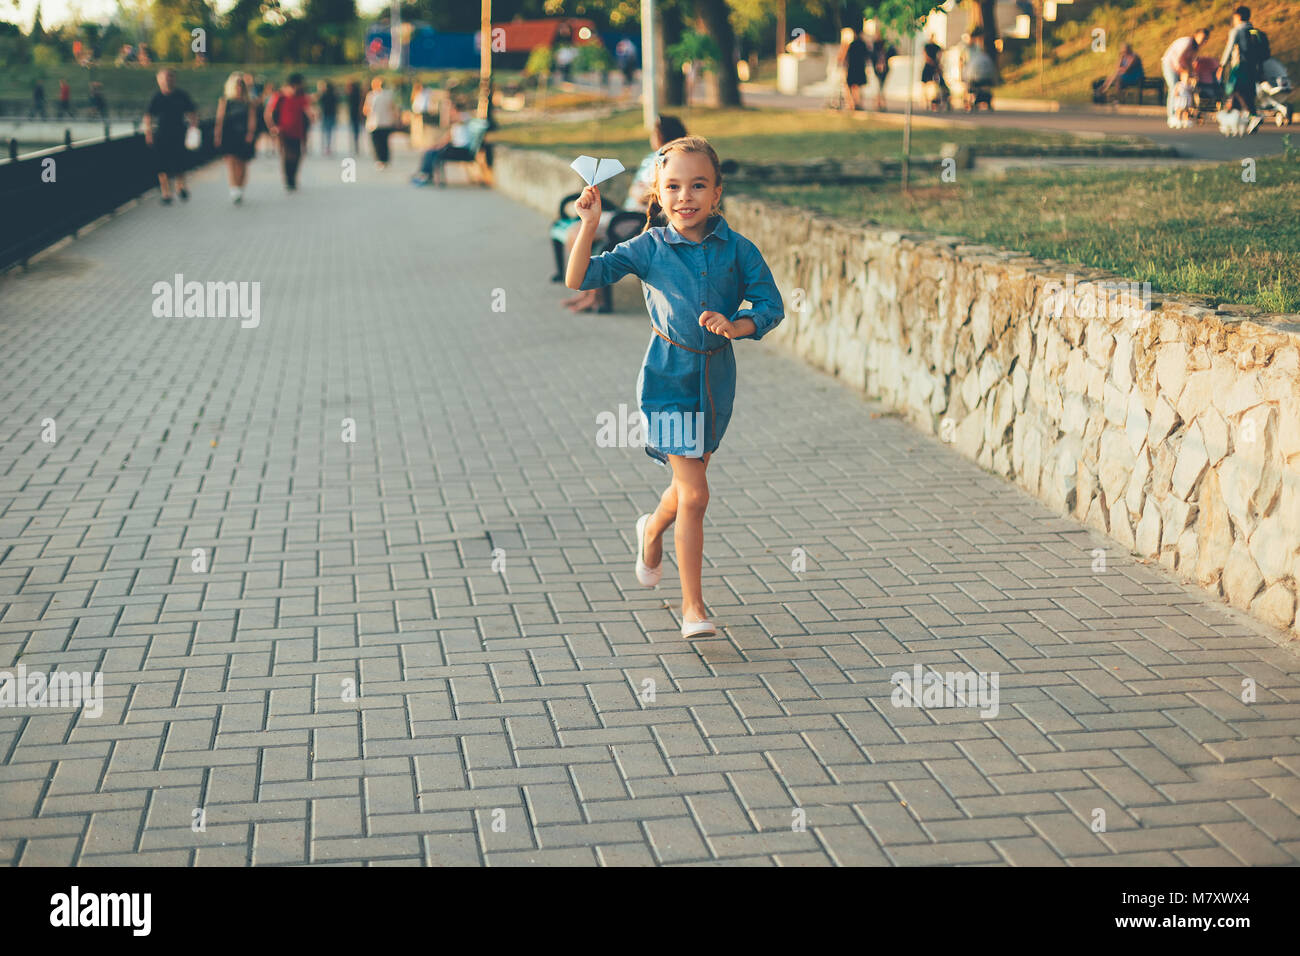 Child playing, running with toy paper airplane in the park, on gray pavage near lake in denim dress. Smiling girl - Stock Image